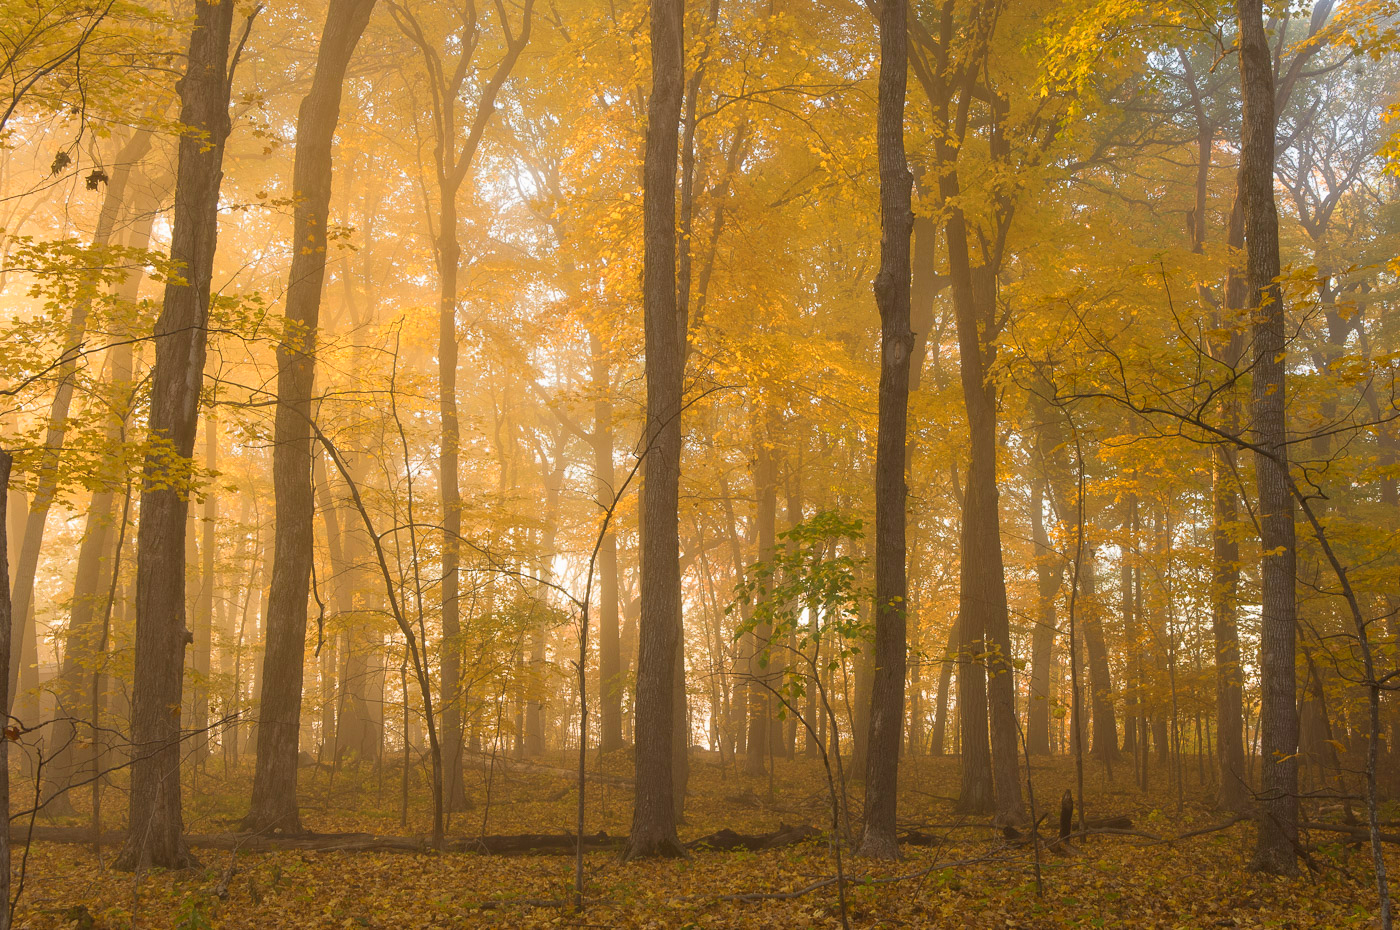 Foggy morning in a forest along the St. Croix National Scenic River, Wisconsin/Minnesota